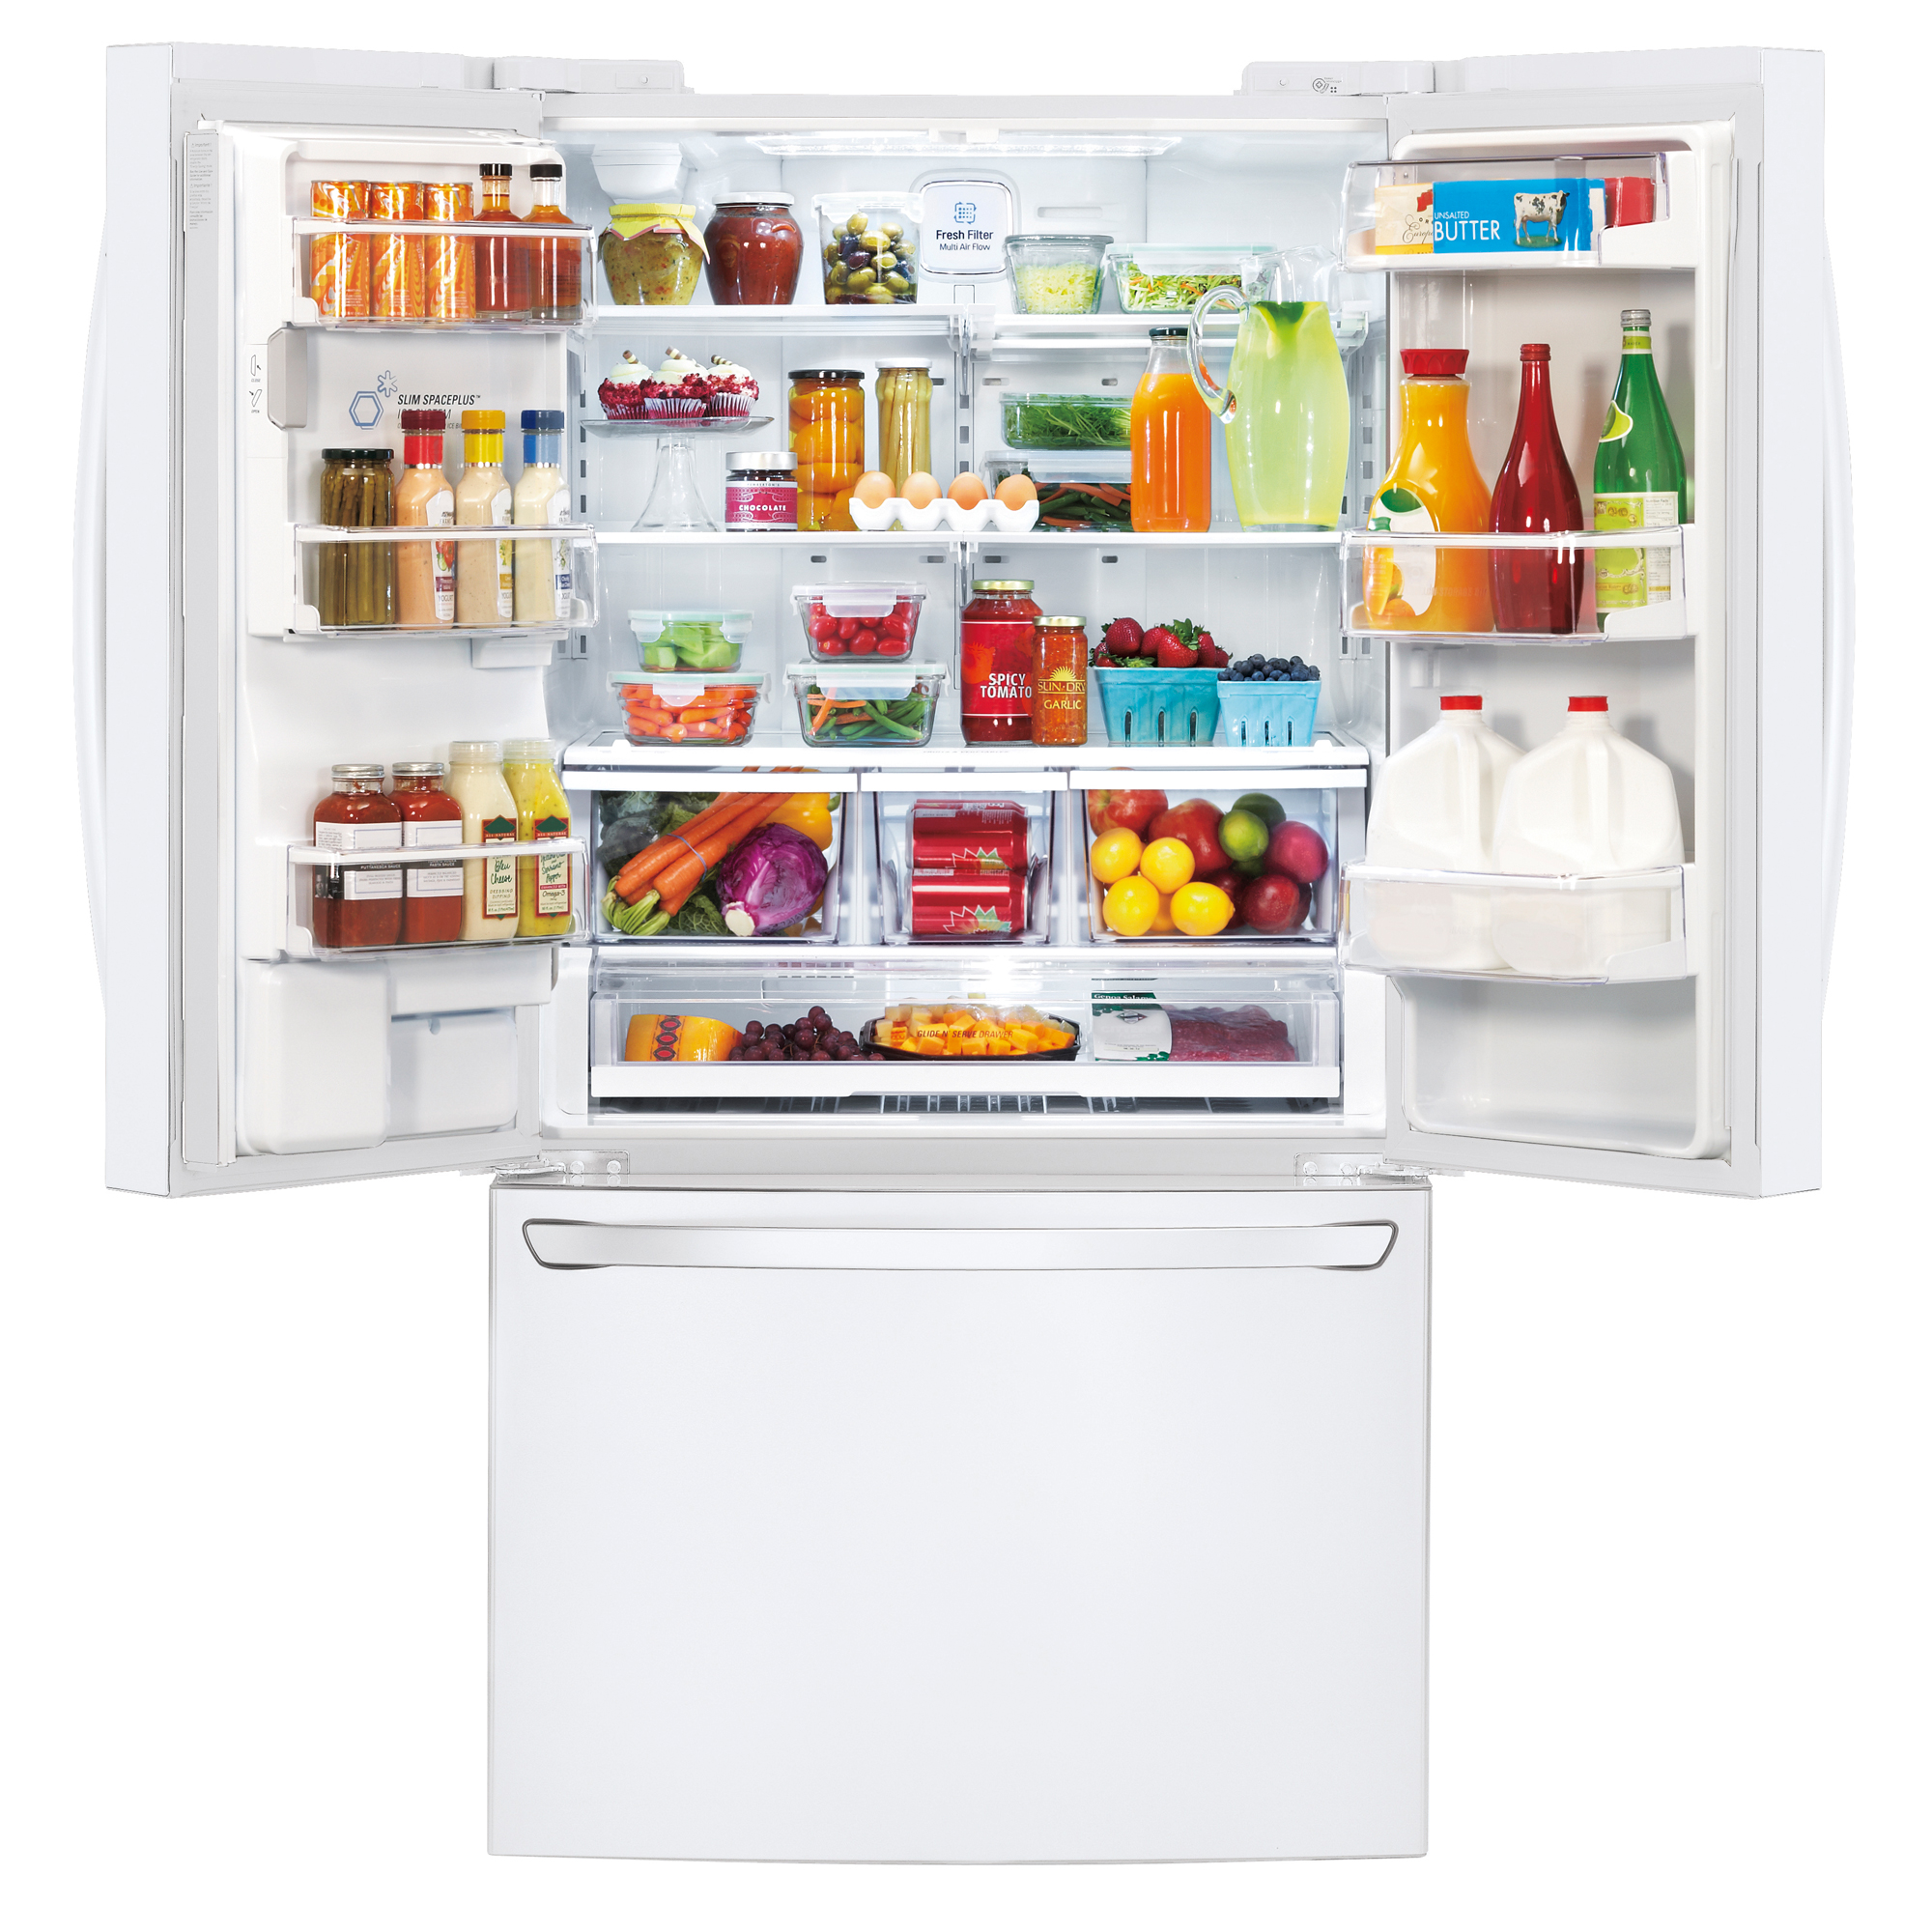 LG LFXS29626W 28.8 cu. ft. Ultra-Capacity French Door Refrigerator w/ Smart Cooling Plus - White